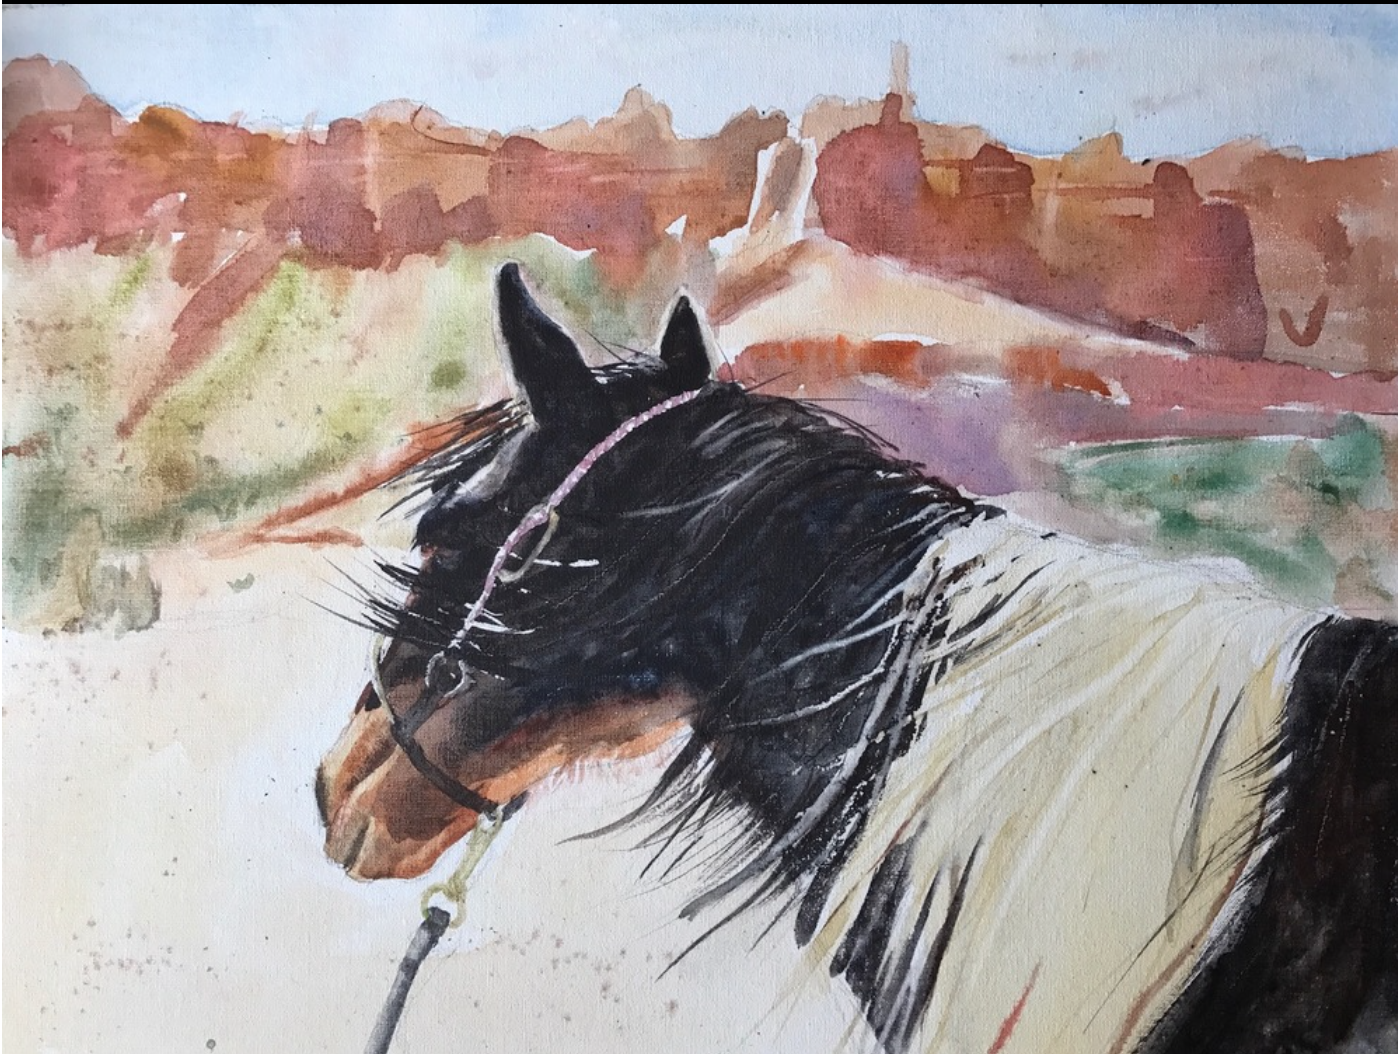 Pixie Glore - http://www.pixieglore.comI paint horses in oils and in watercolor. I have a horse and I try to capture the spirit and emotion of these beautiful creatures with strong drawing and creative expression.